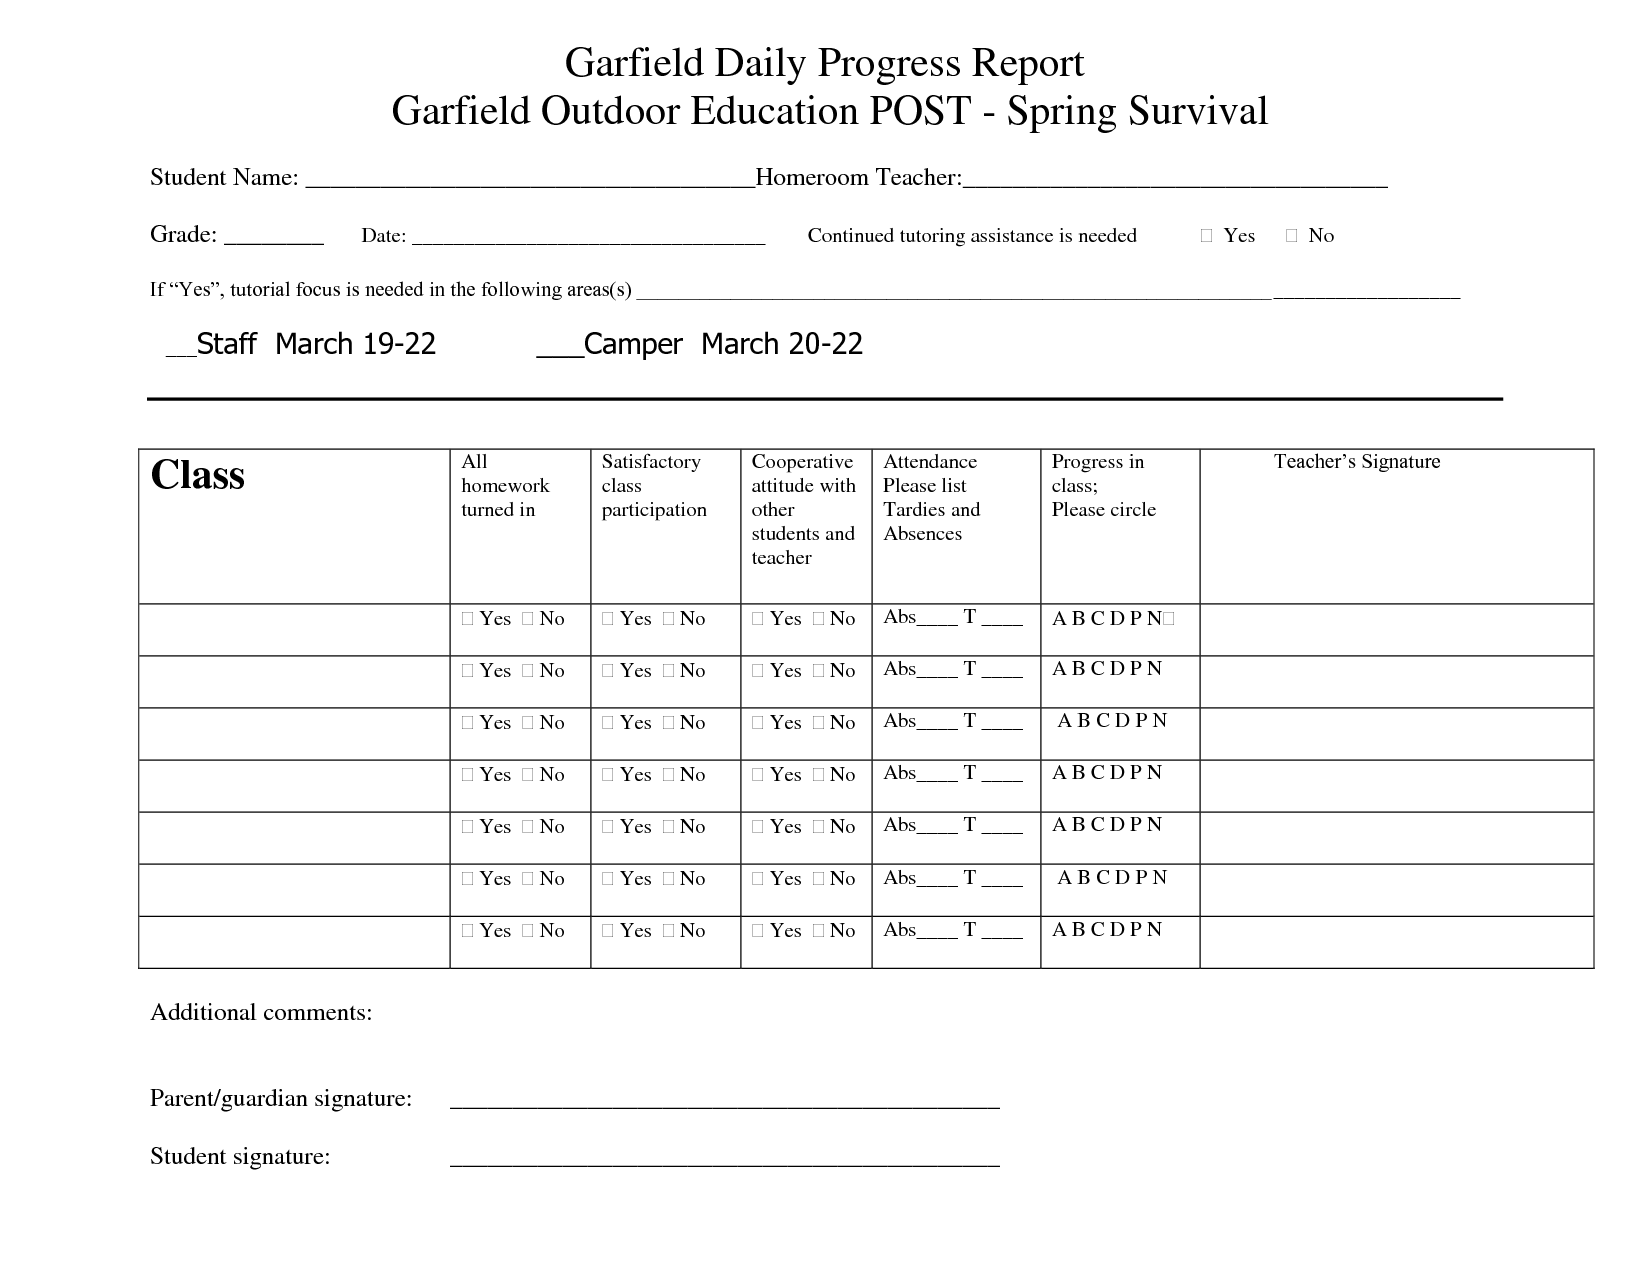 student progress report 1 Gradesfirst progress report campaigns allow you to gather feedback from  faculty  enter the date of 11/1, which tells gradesfirst to exclude the students  who.